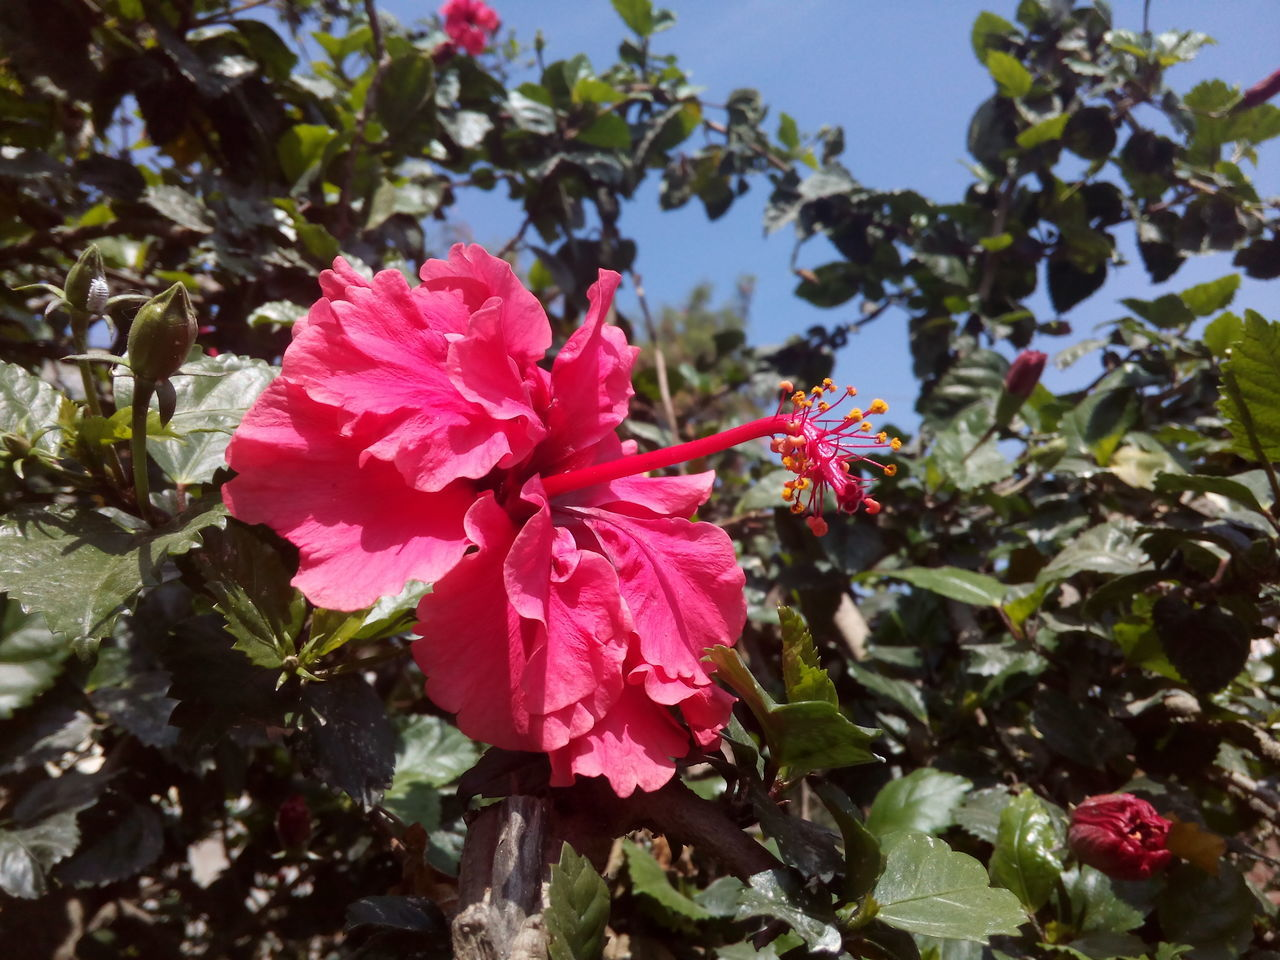 flower, growth, fragility, petal, nature, beauty in nature, pink color, freshness, flower head, day, no people, blooming, outdoors, plant, sunlight, leaf, hibiscus, close-up, periwinkle